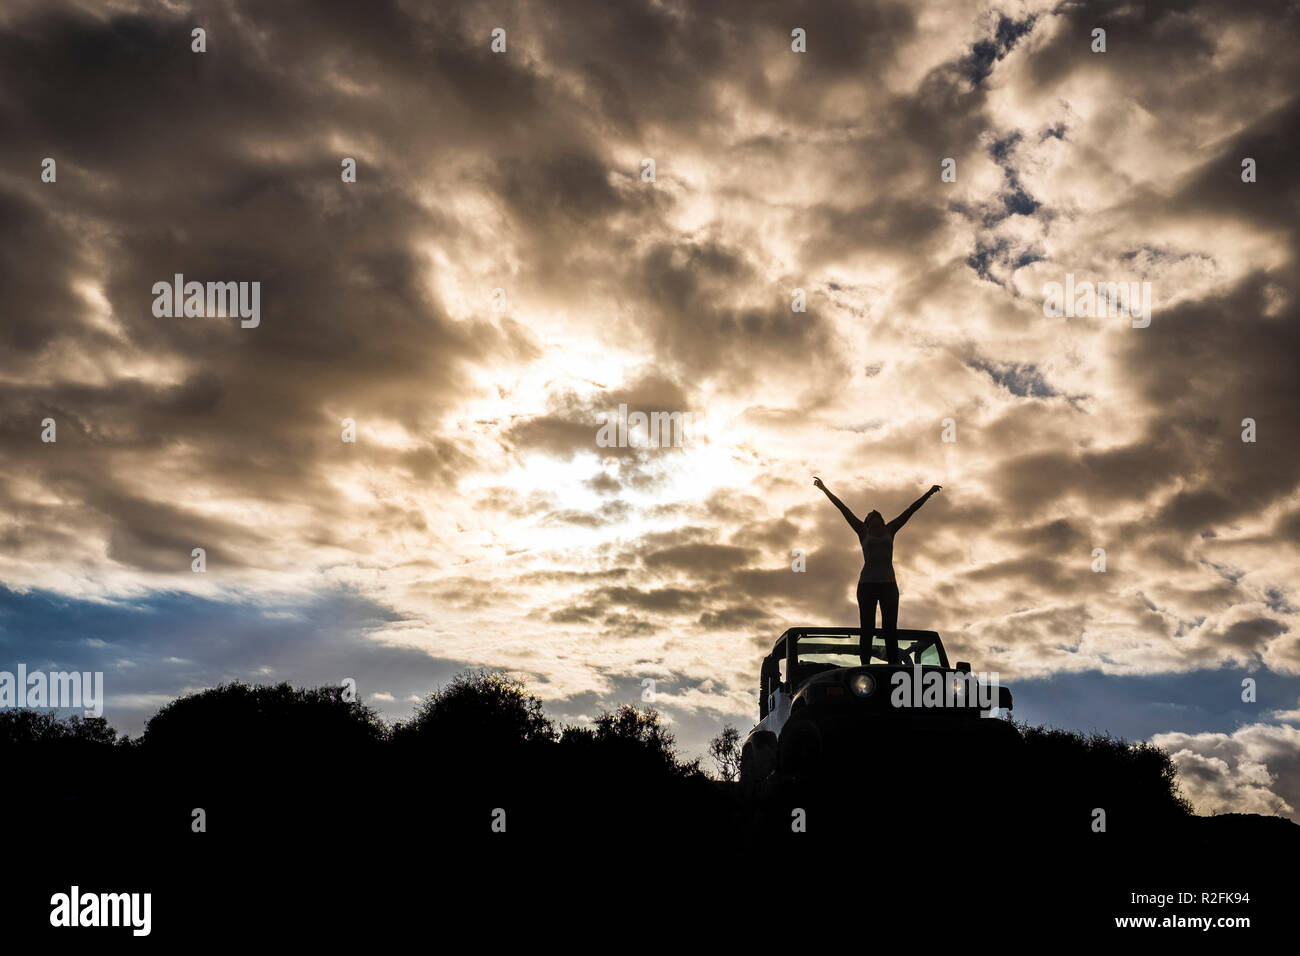 beautiful girl stand up on a off road car with amazing and great dramatic sunset over her body in silhouette.  Winner and travel destination concept - Stock Image